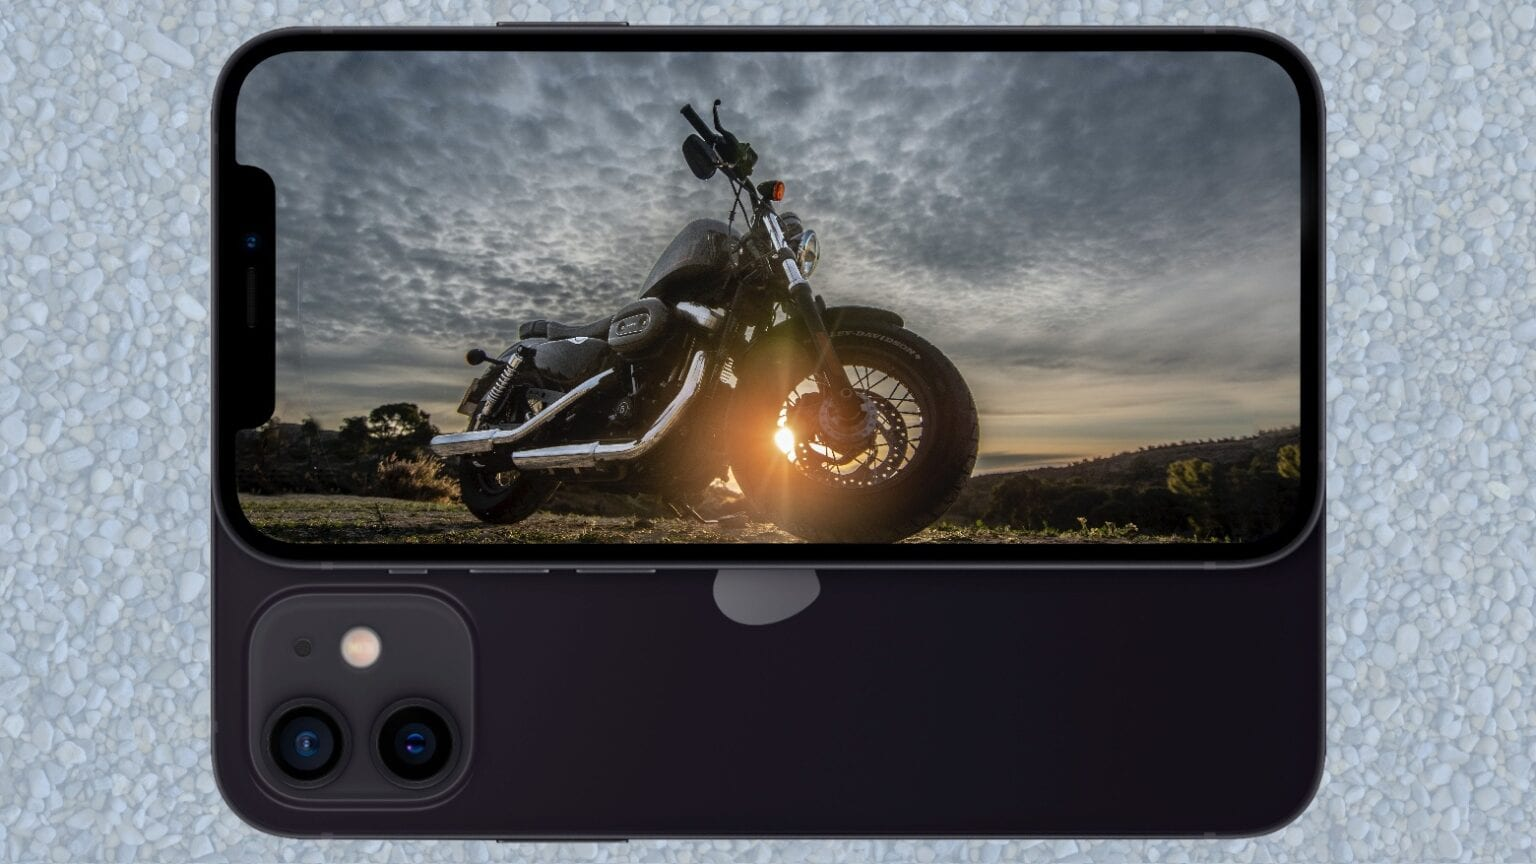 Motorcycles can permanently screw up your iPhone camera